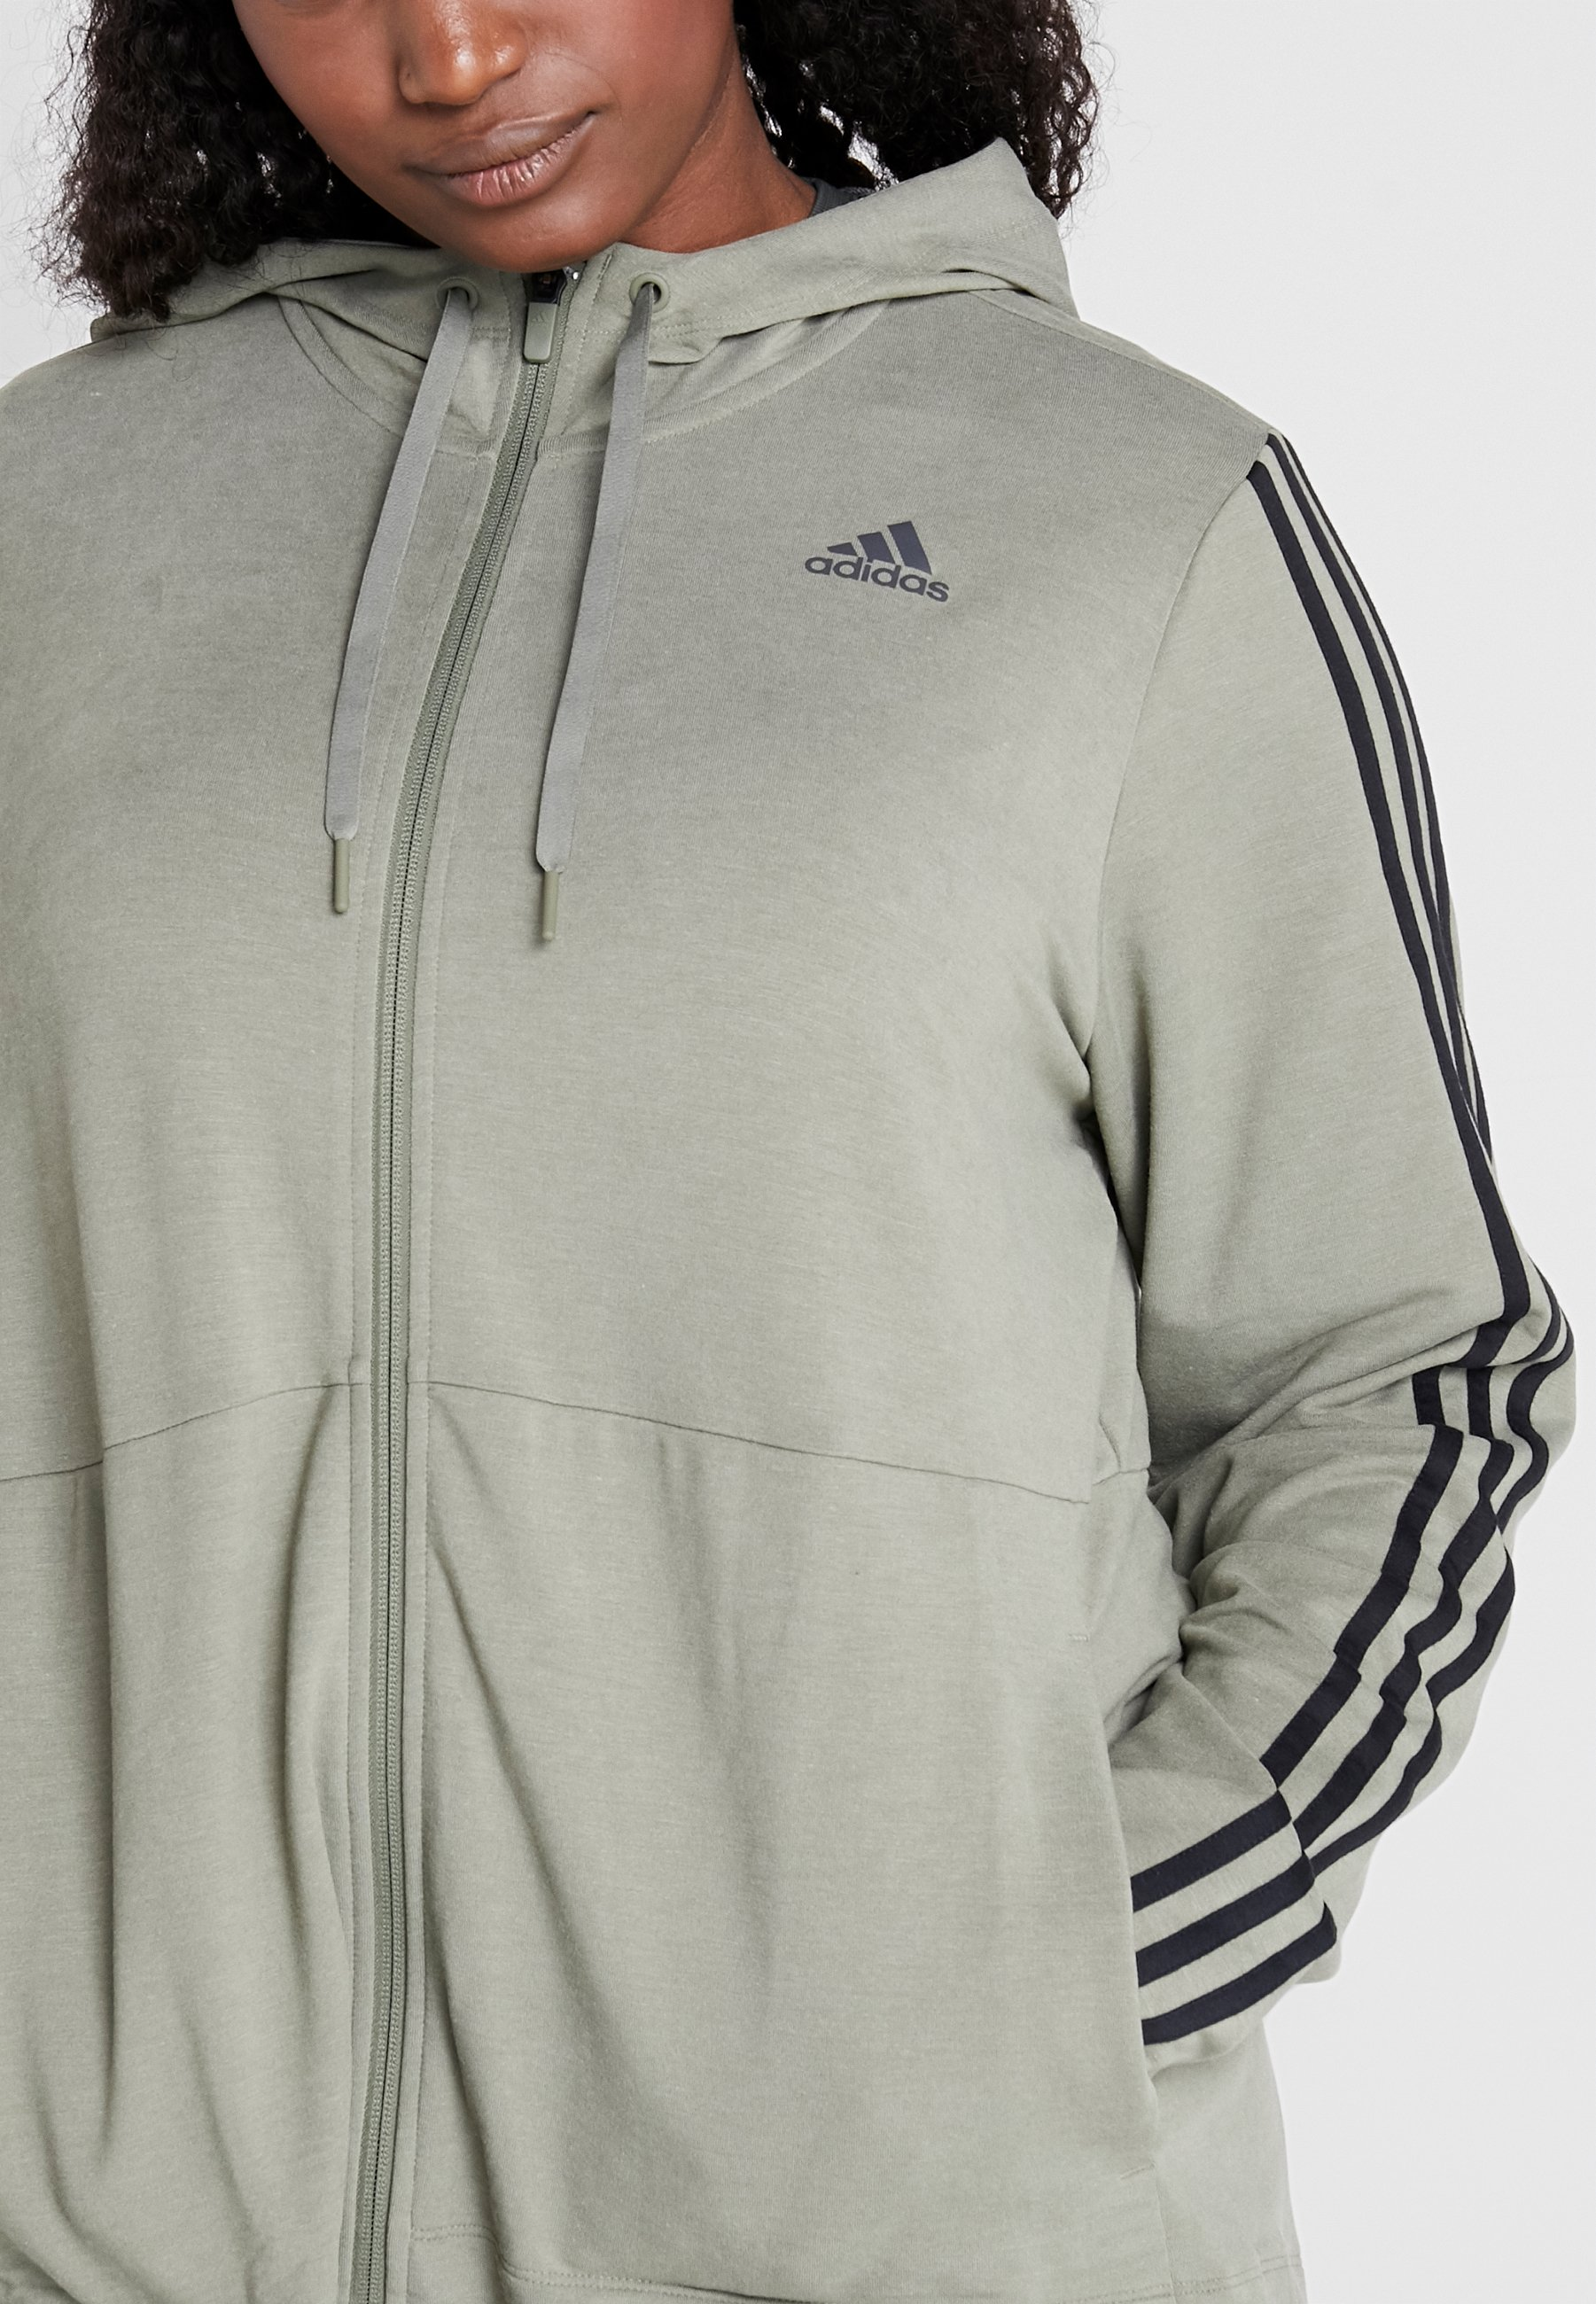 adidas Performance 3S HOOD Sweatjacke legend green